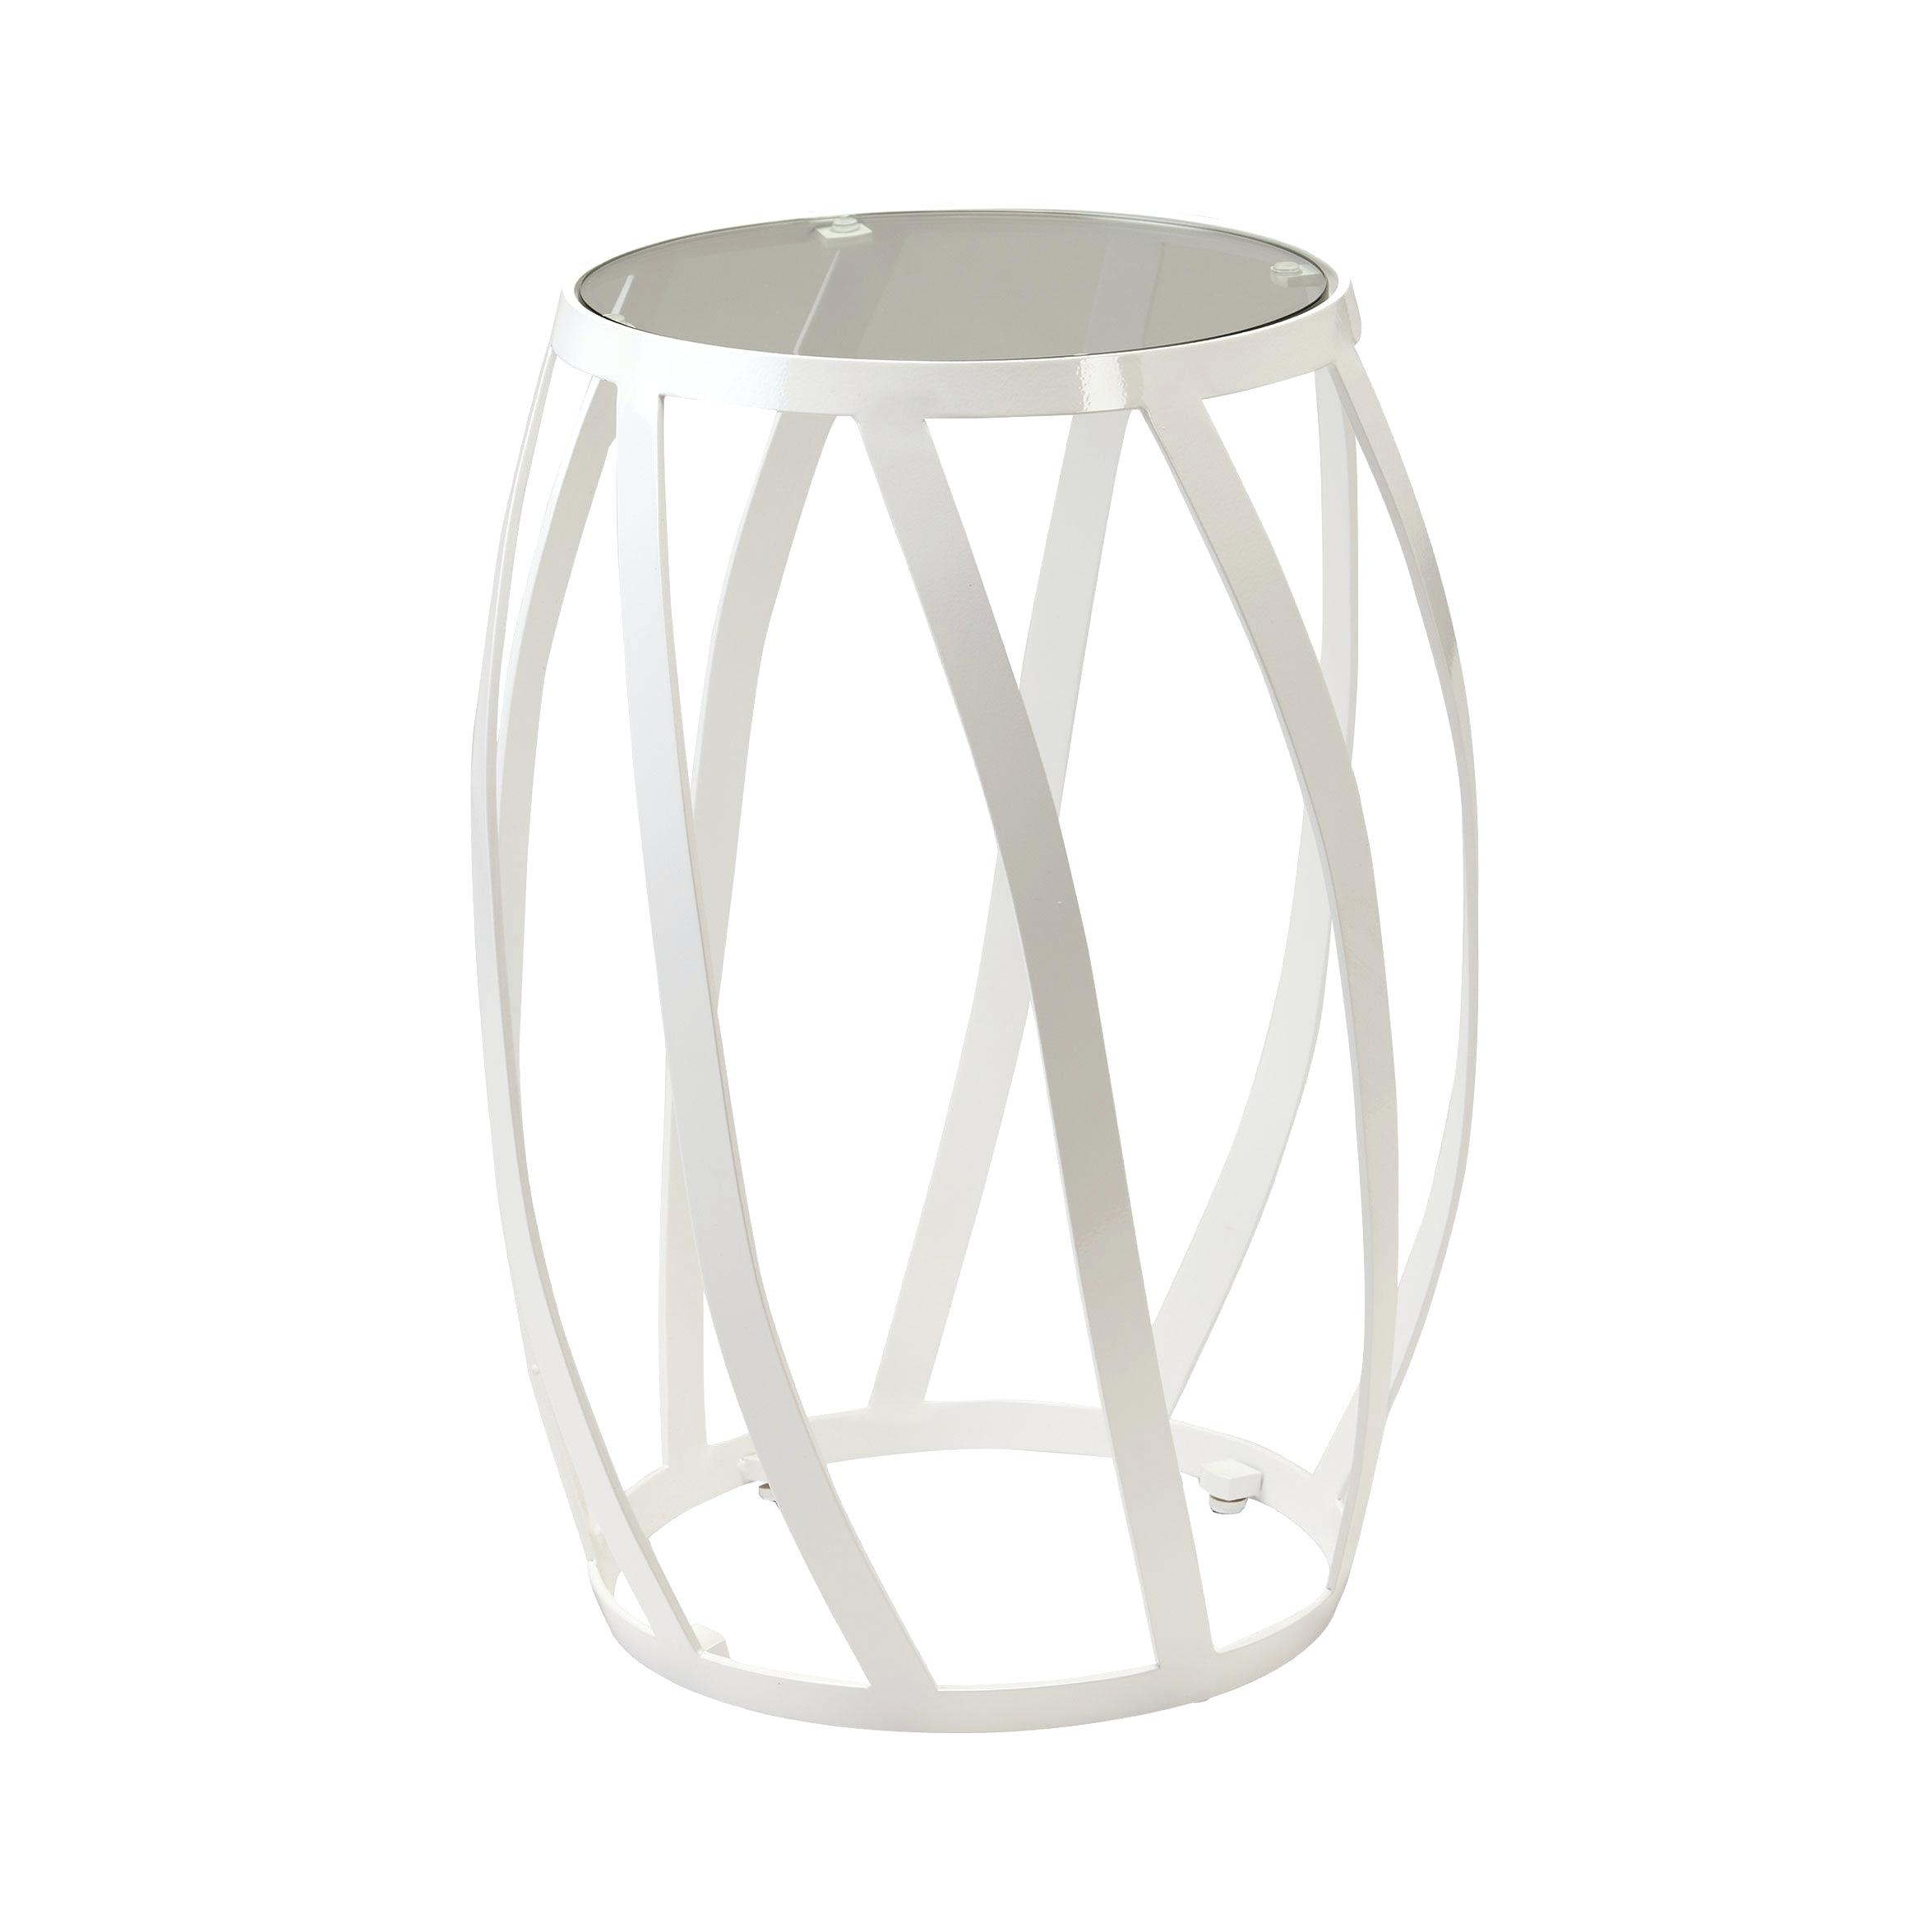 decoration off white accent table small tables living room twist large decorative target bar height windham storage cabinet teal marble round side winter patio furniture covers